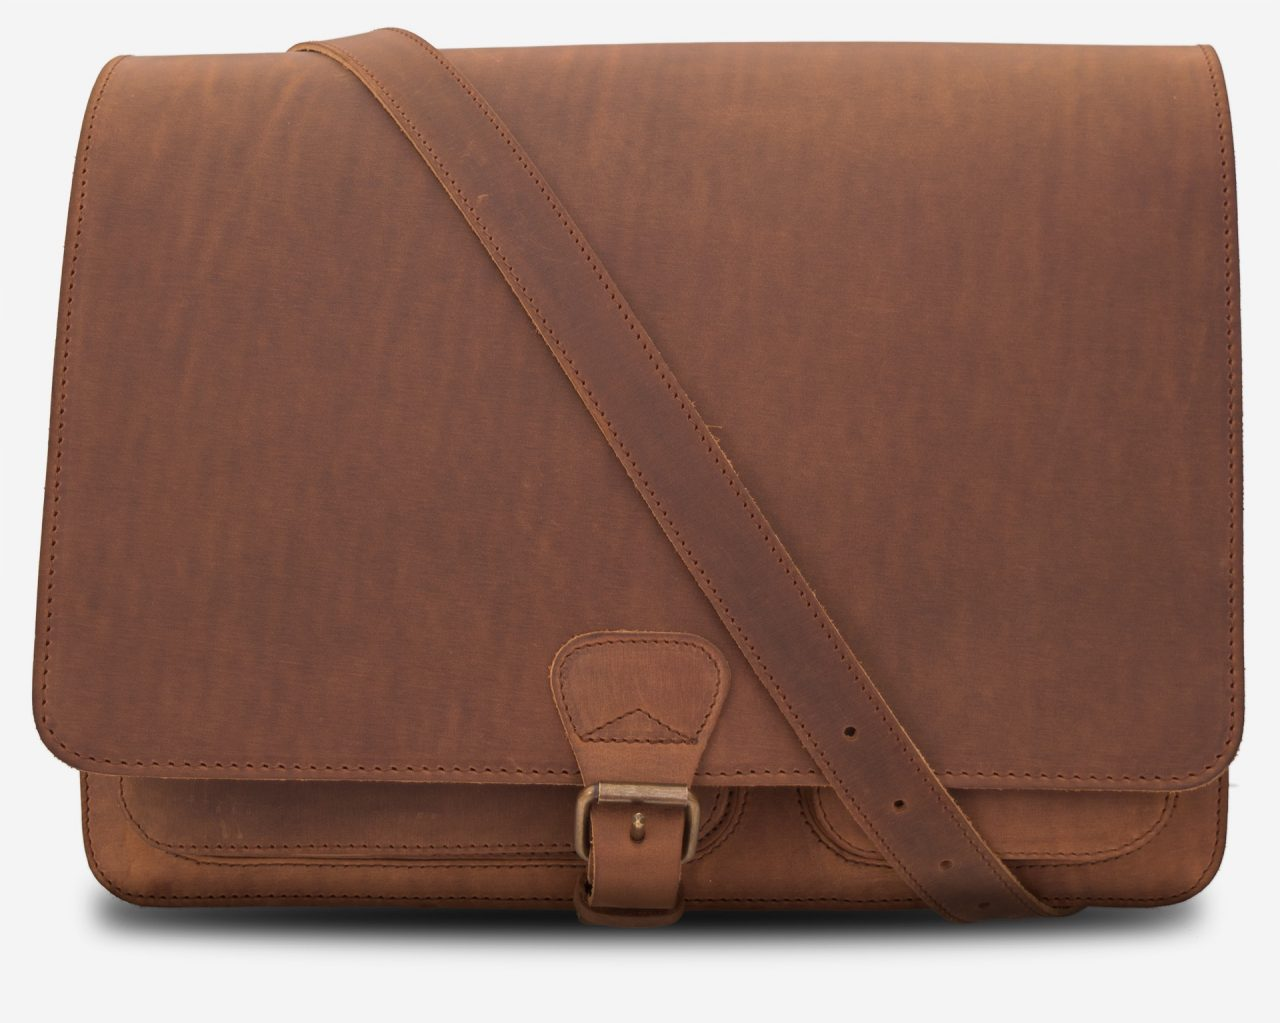 Front view of the large brown leather messenger bag with shoulder strap.